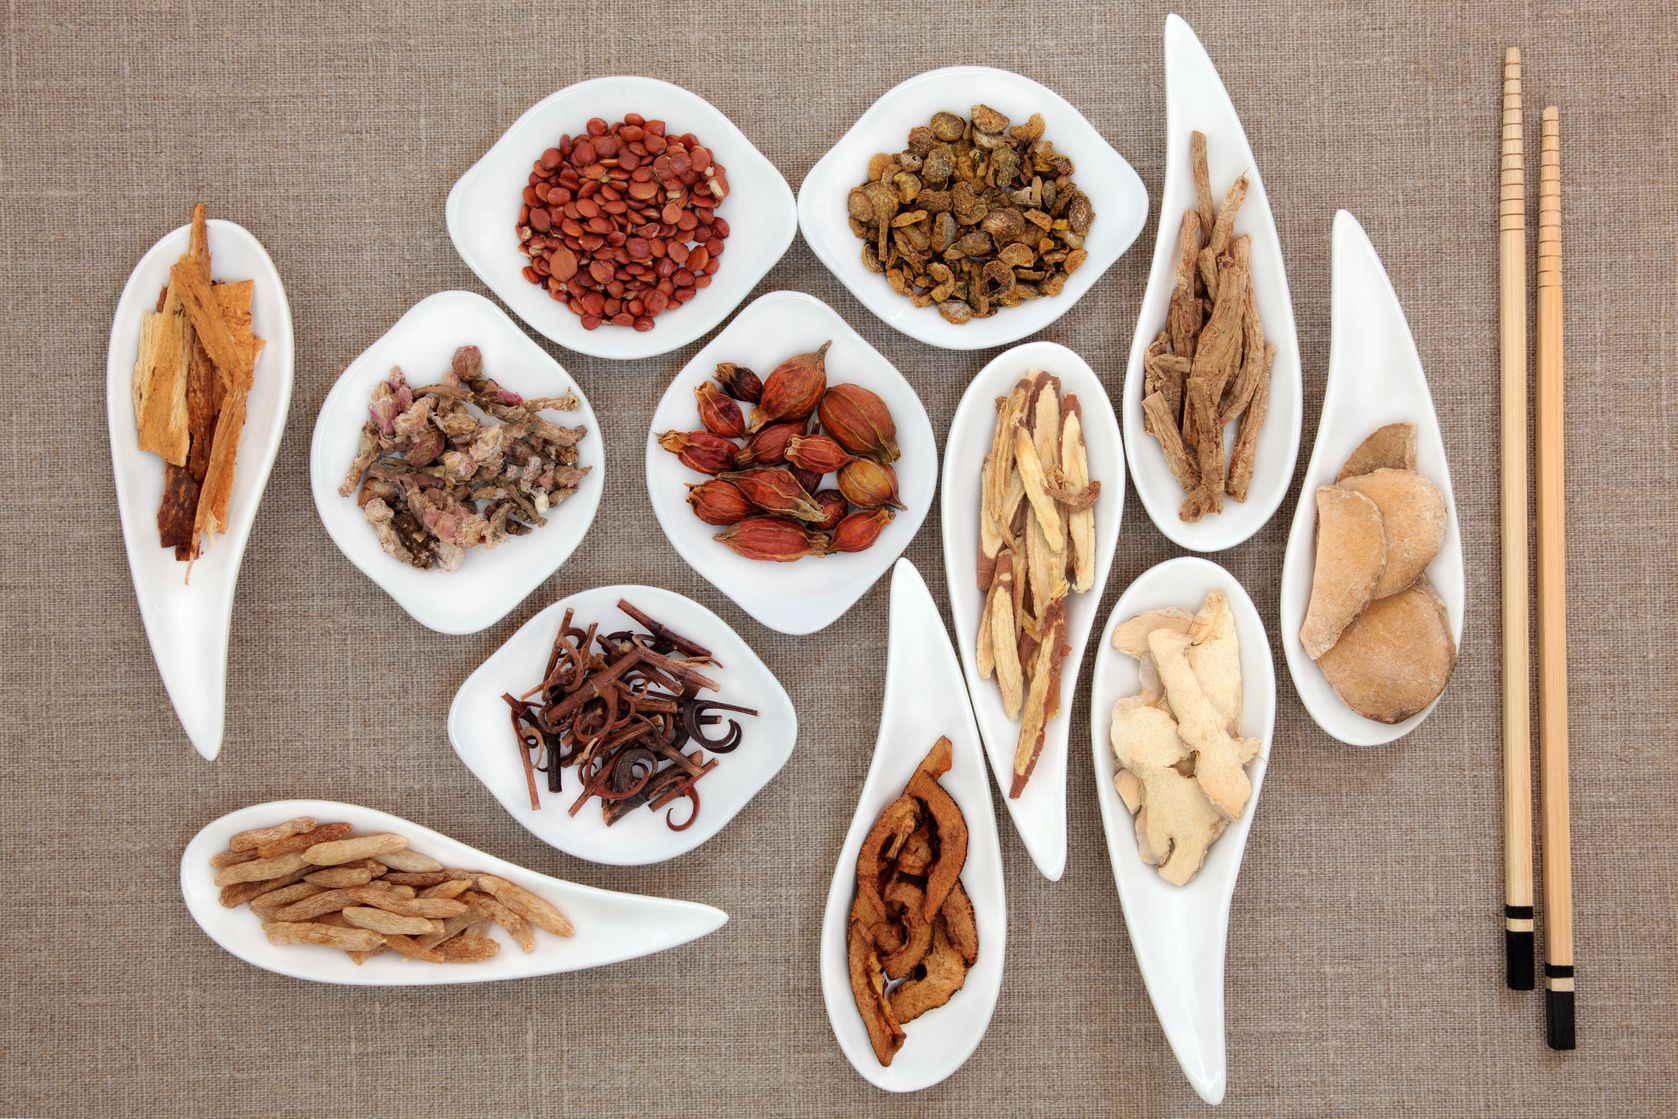 Chinese herbal treatment -  Chinese Herbal Medicine Herbs In Bowls With Chopsticks